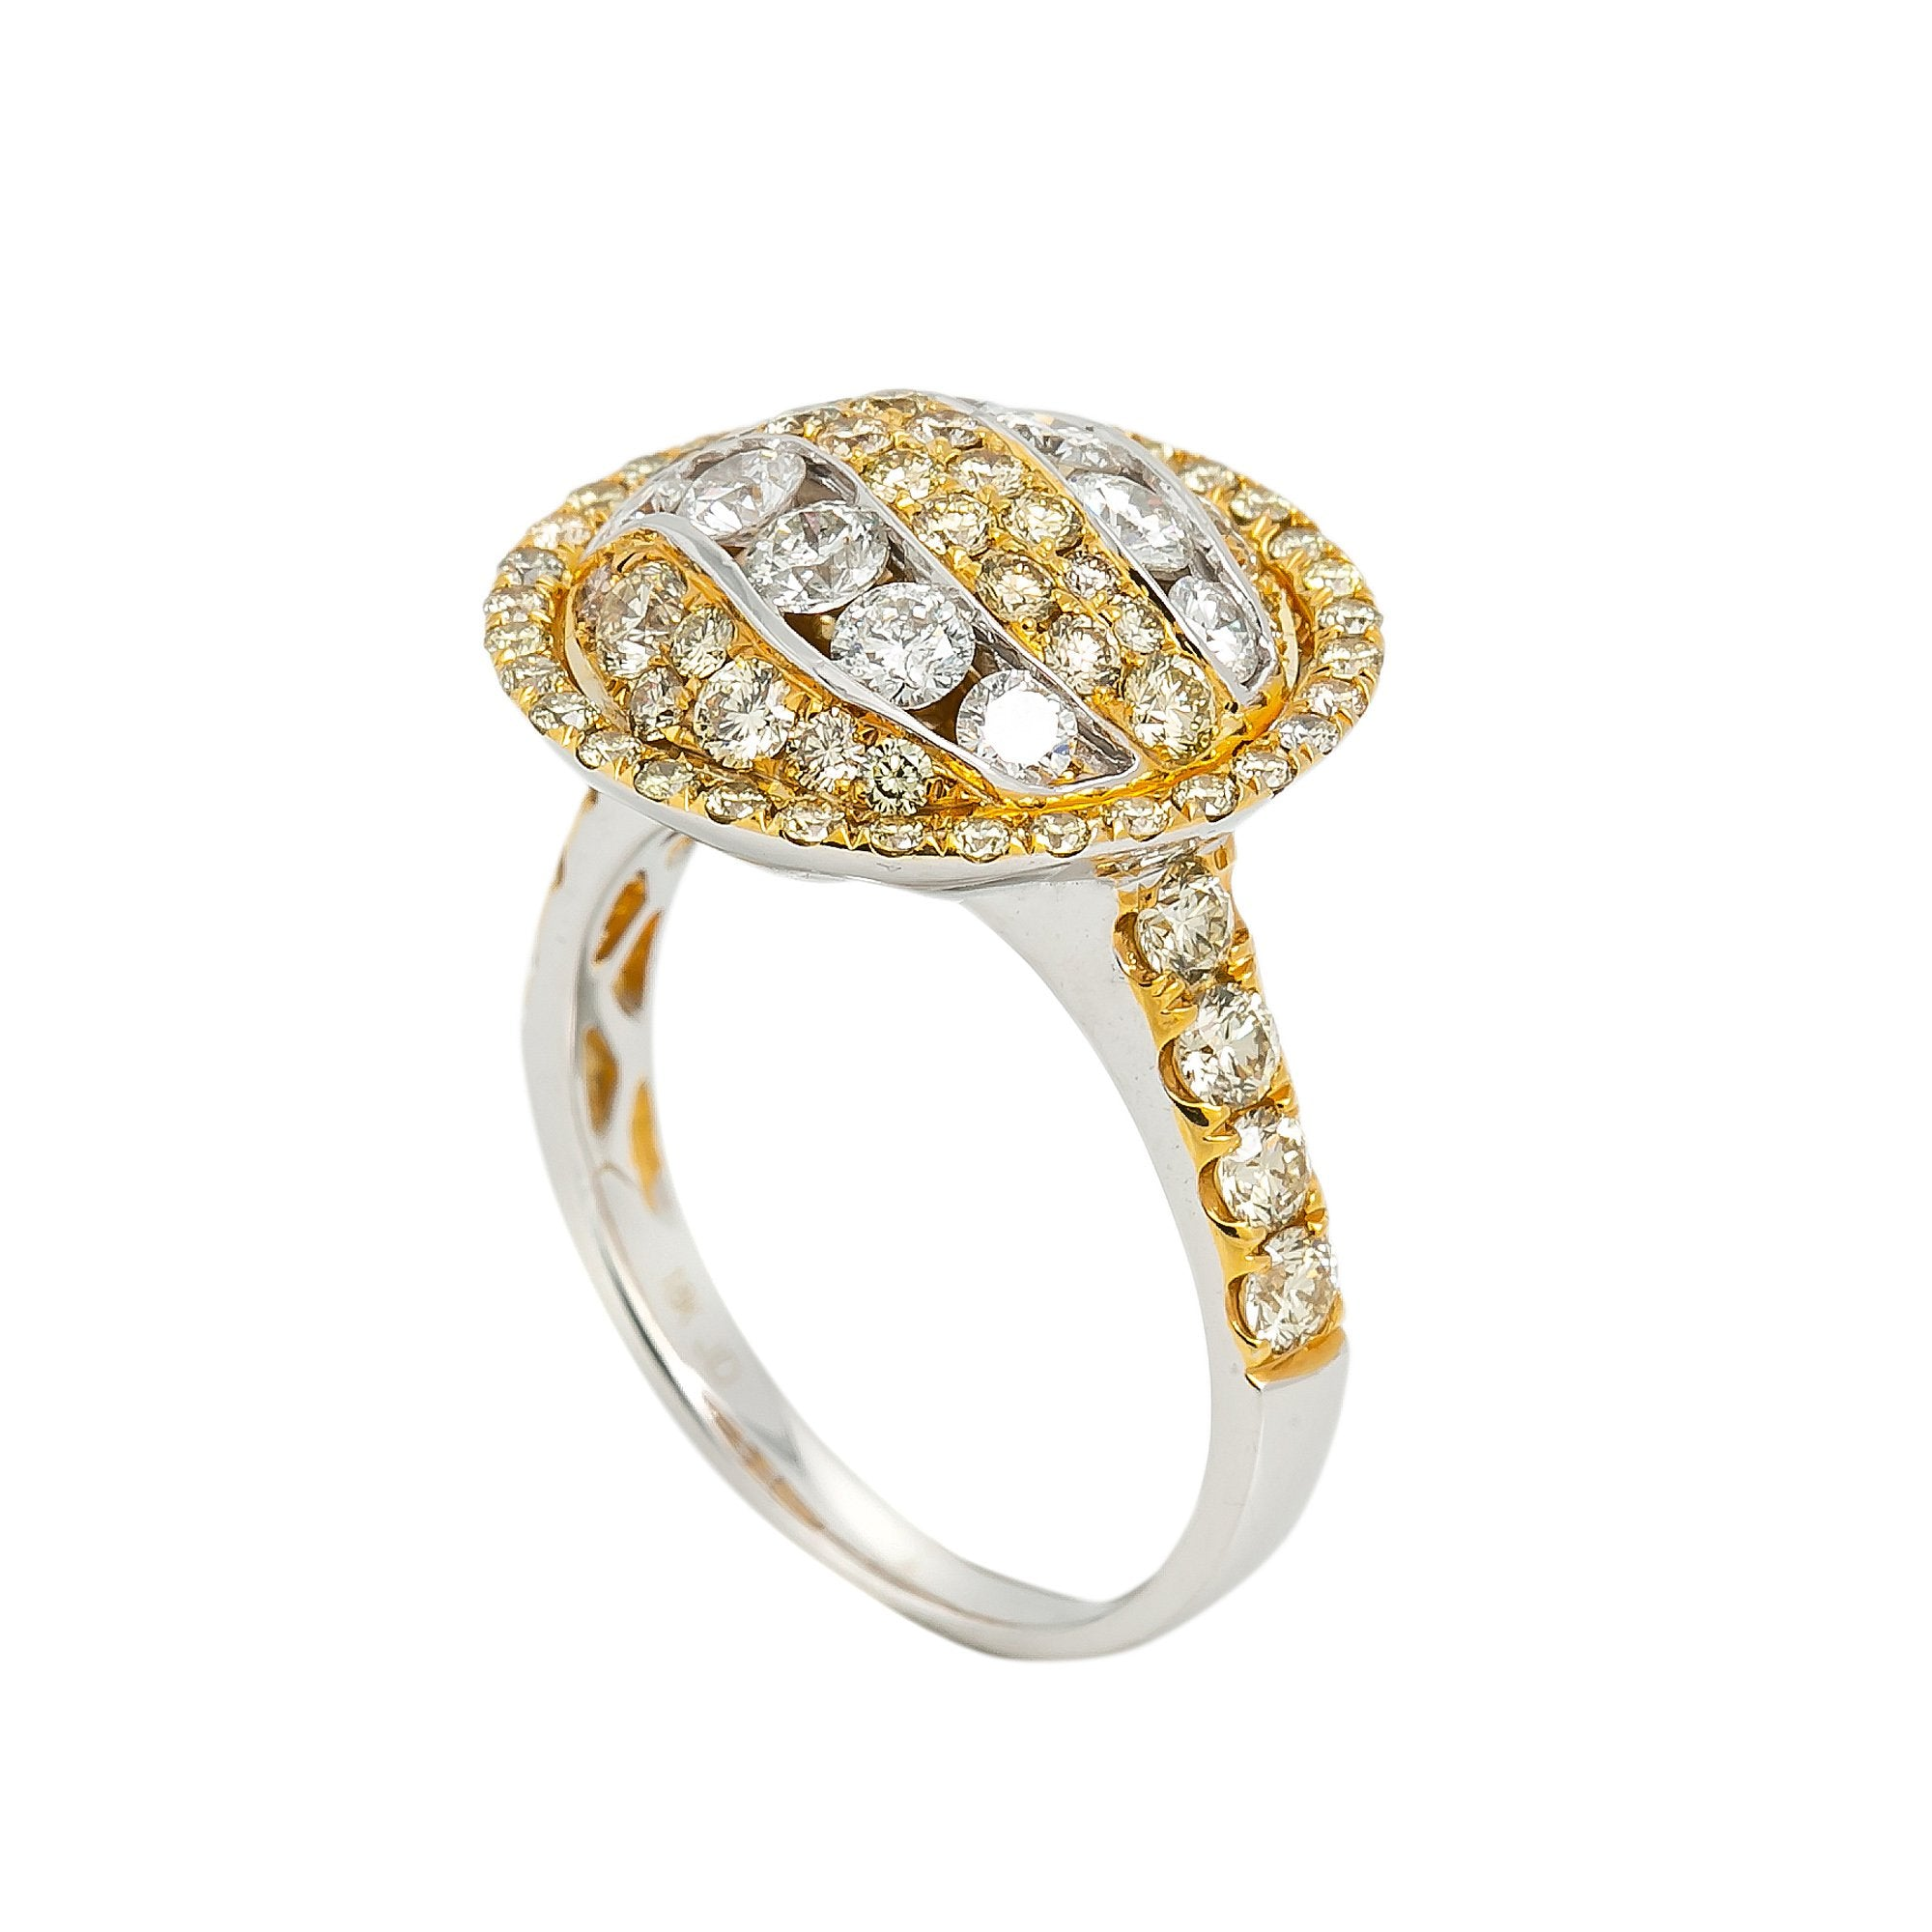 LADIES 18K YELLOW AND WHITE GOLD HAND RING WITH 2.72 CT DIAMONDS